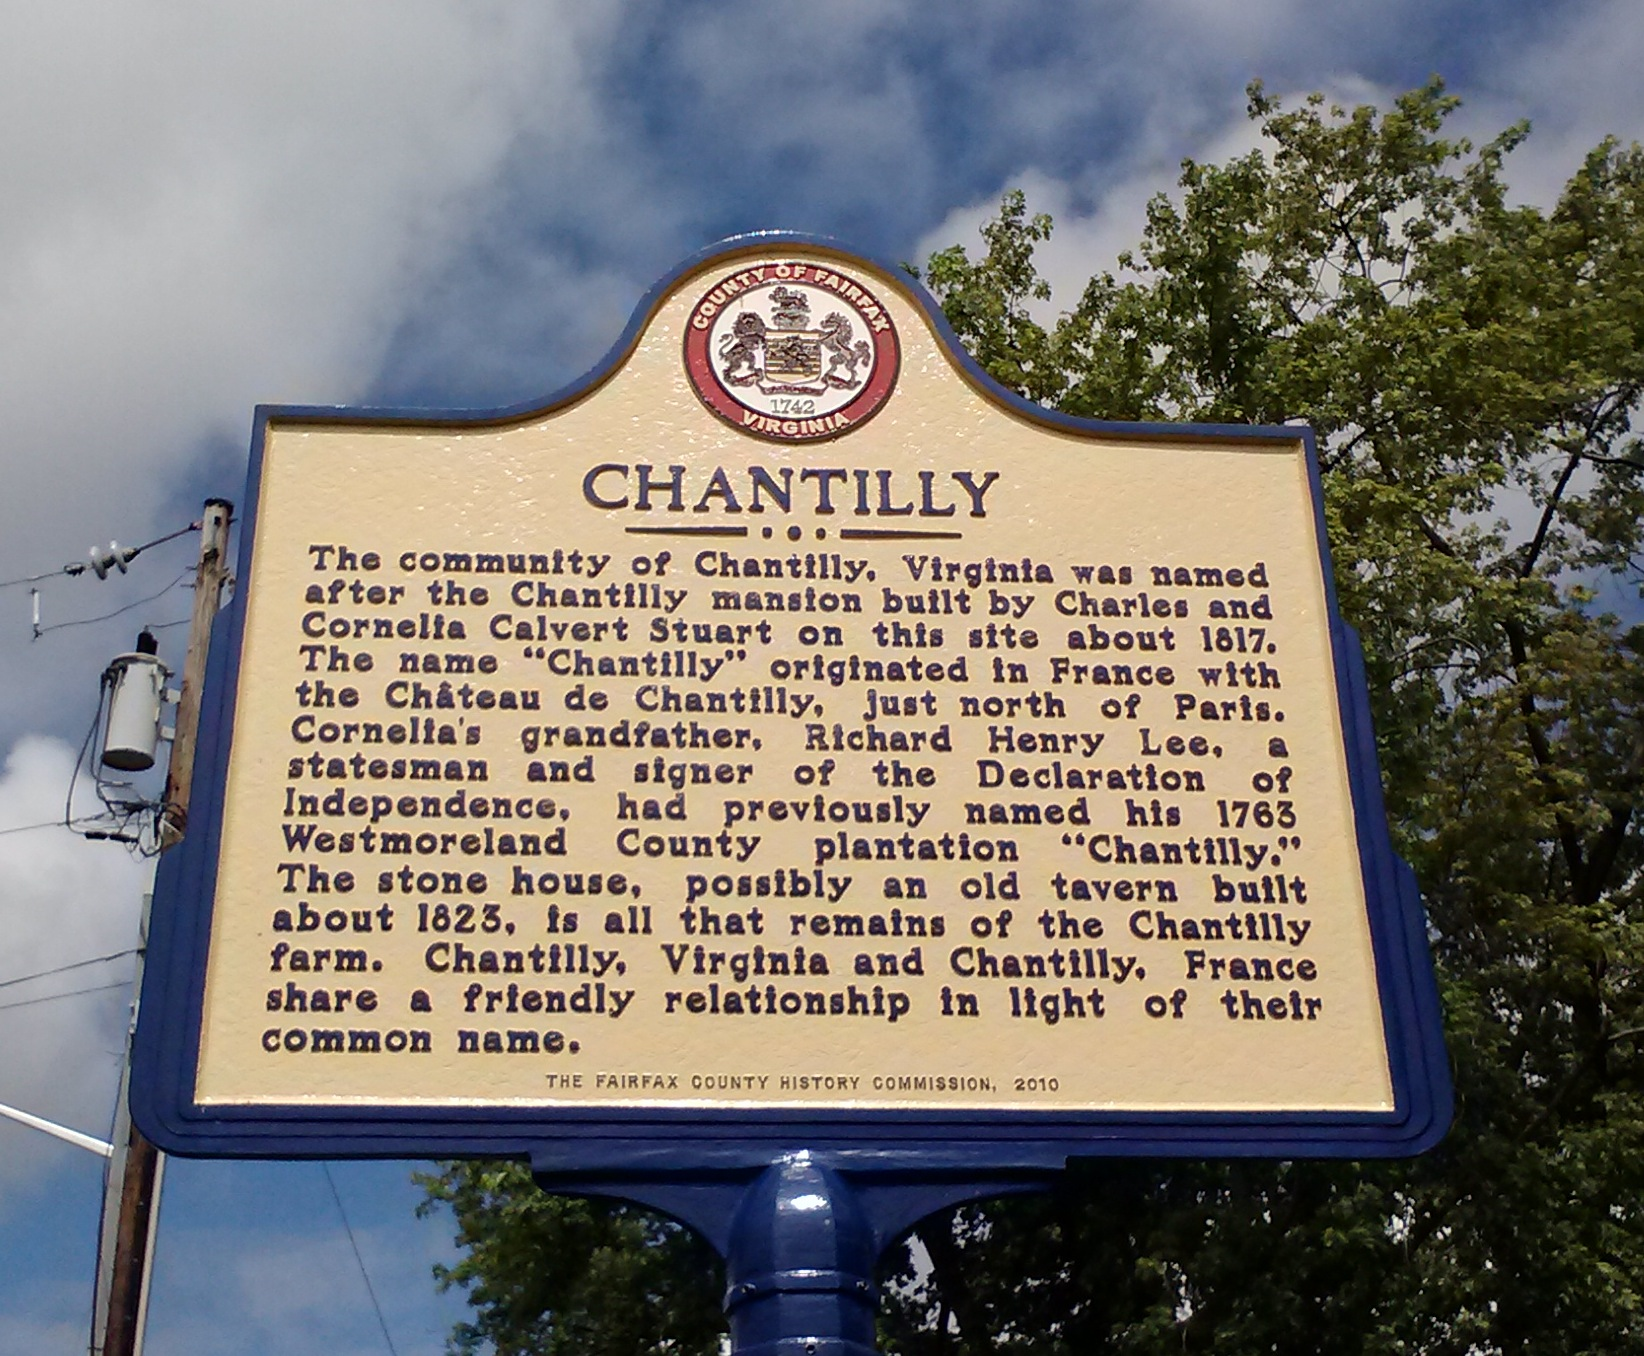 Chantilly Homes Current Listings and Market Report - Update 3